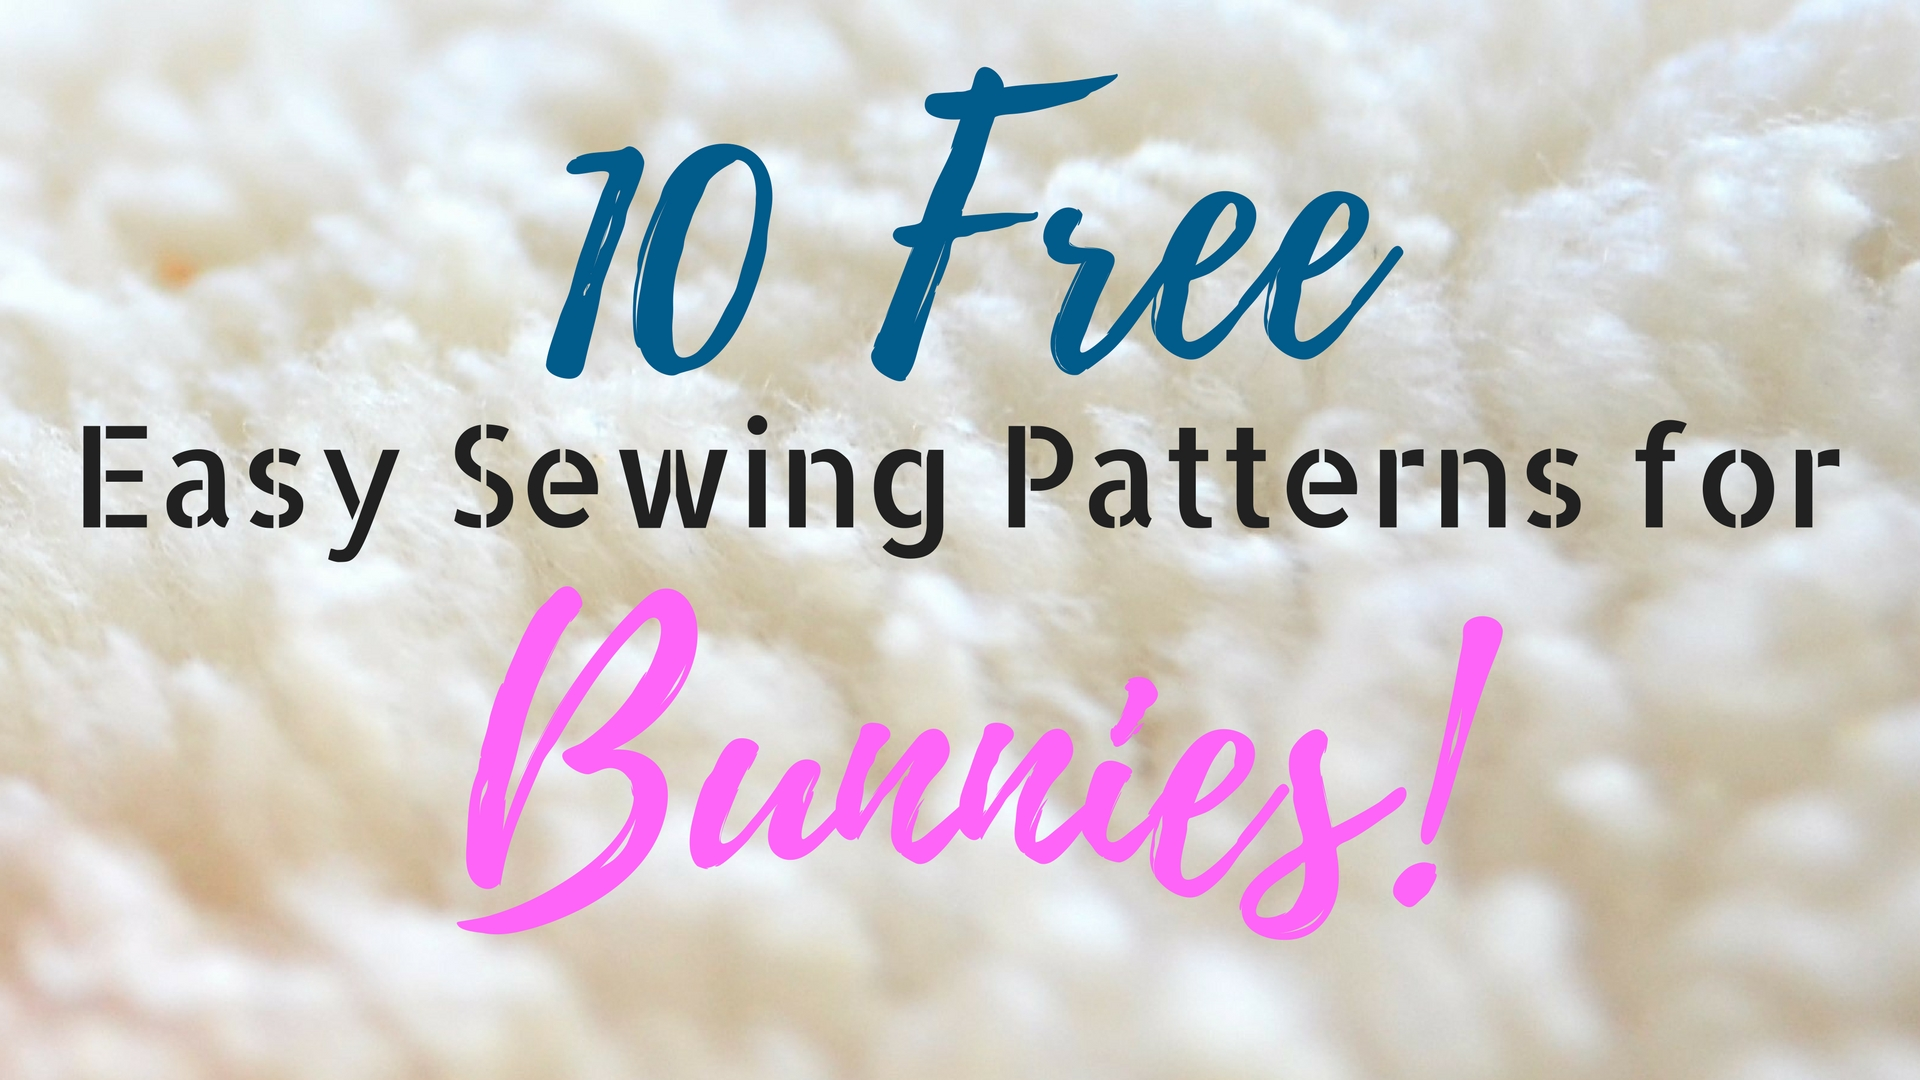 10 Free Easy Sewing Patterns for Bunnies: Round-up! - Making Things ...